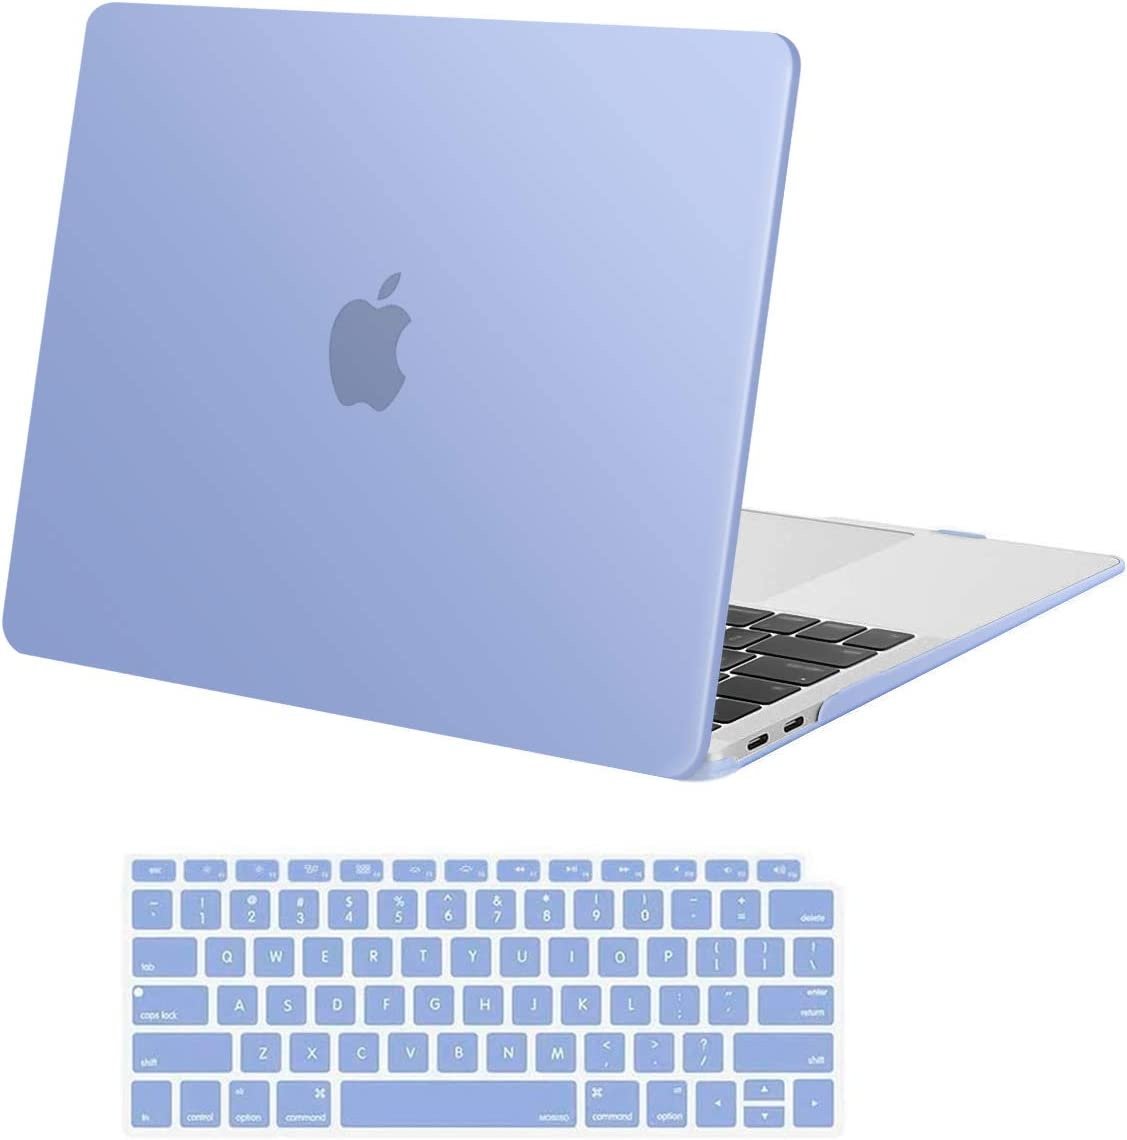 MOSISO MacBook Air 13 inch Case 2020 2019 2018 Release A2179 A1932, Plastic Hard Shell Case & Keyboard Cover Skin Only Compatible with MacBook Air 13 inch with Retina Display, Serenity Blue